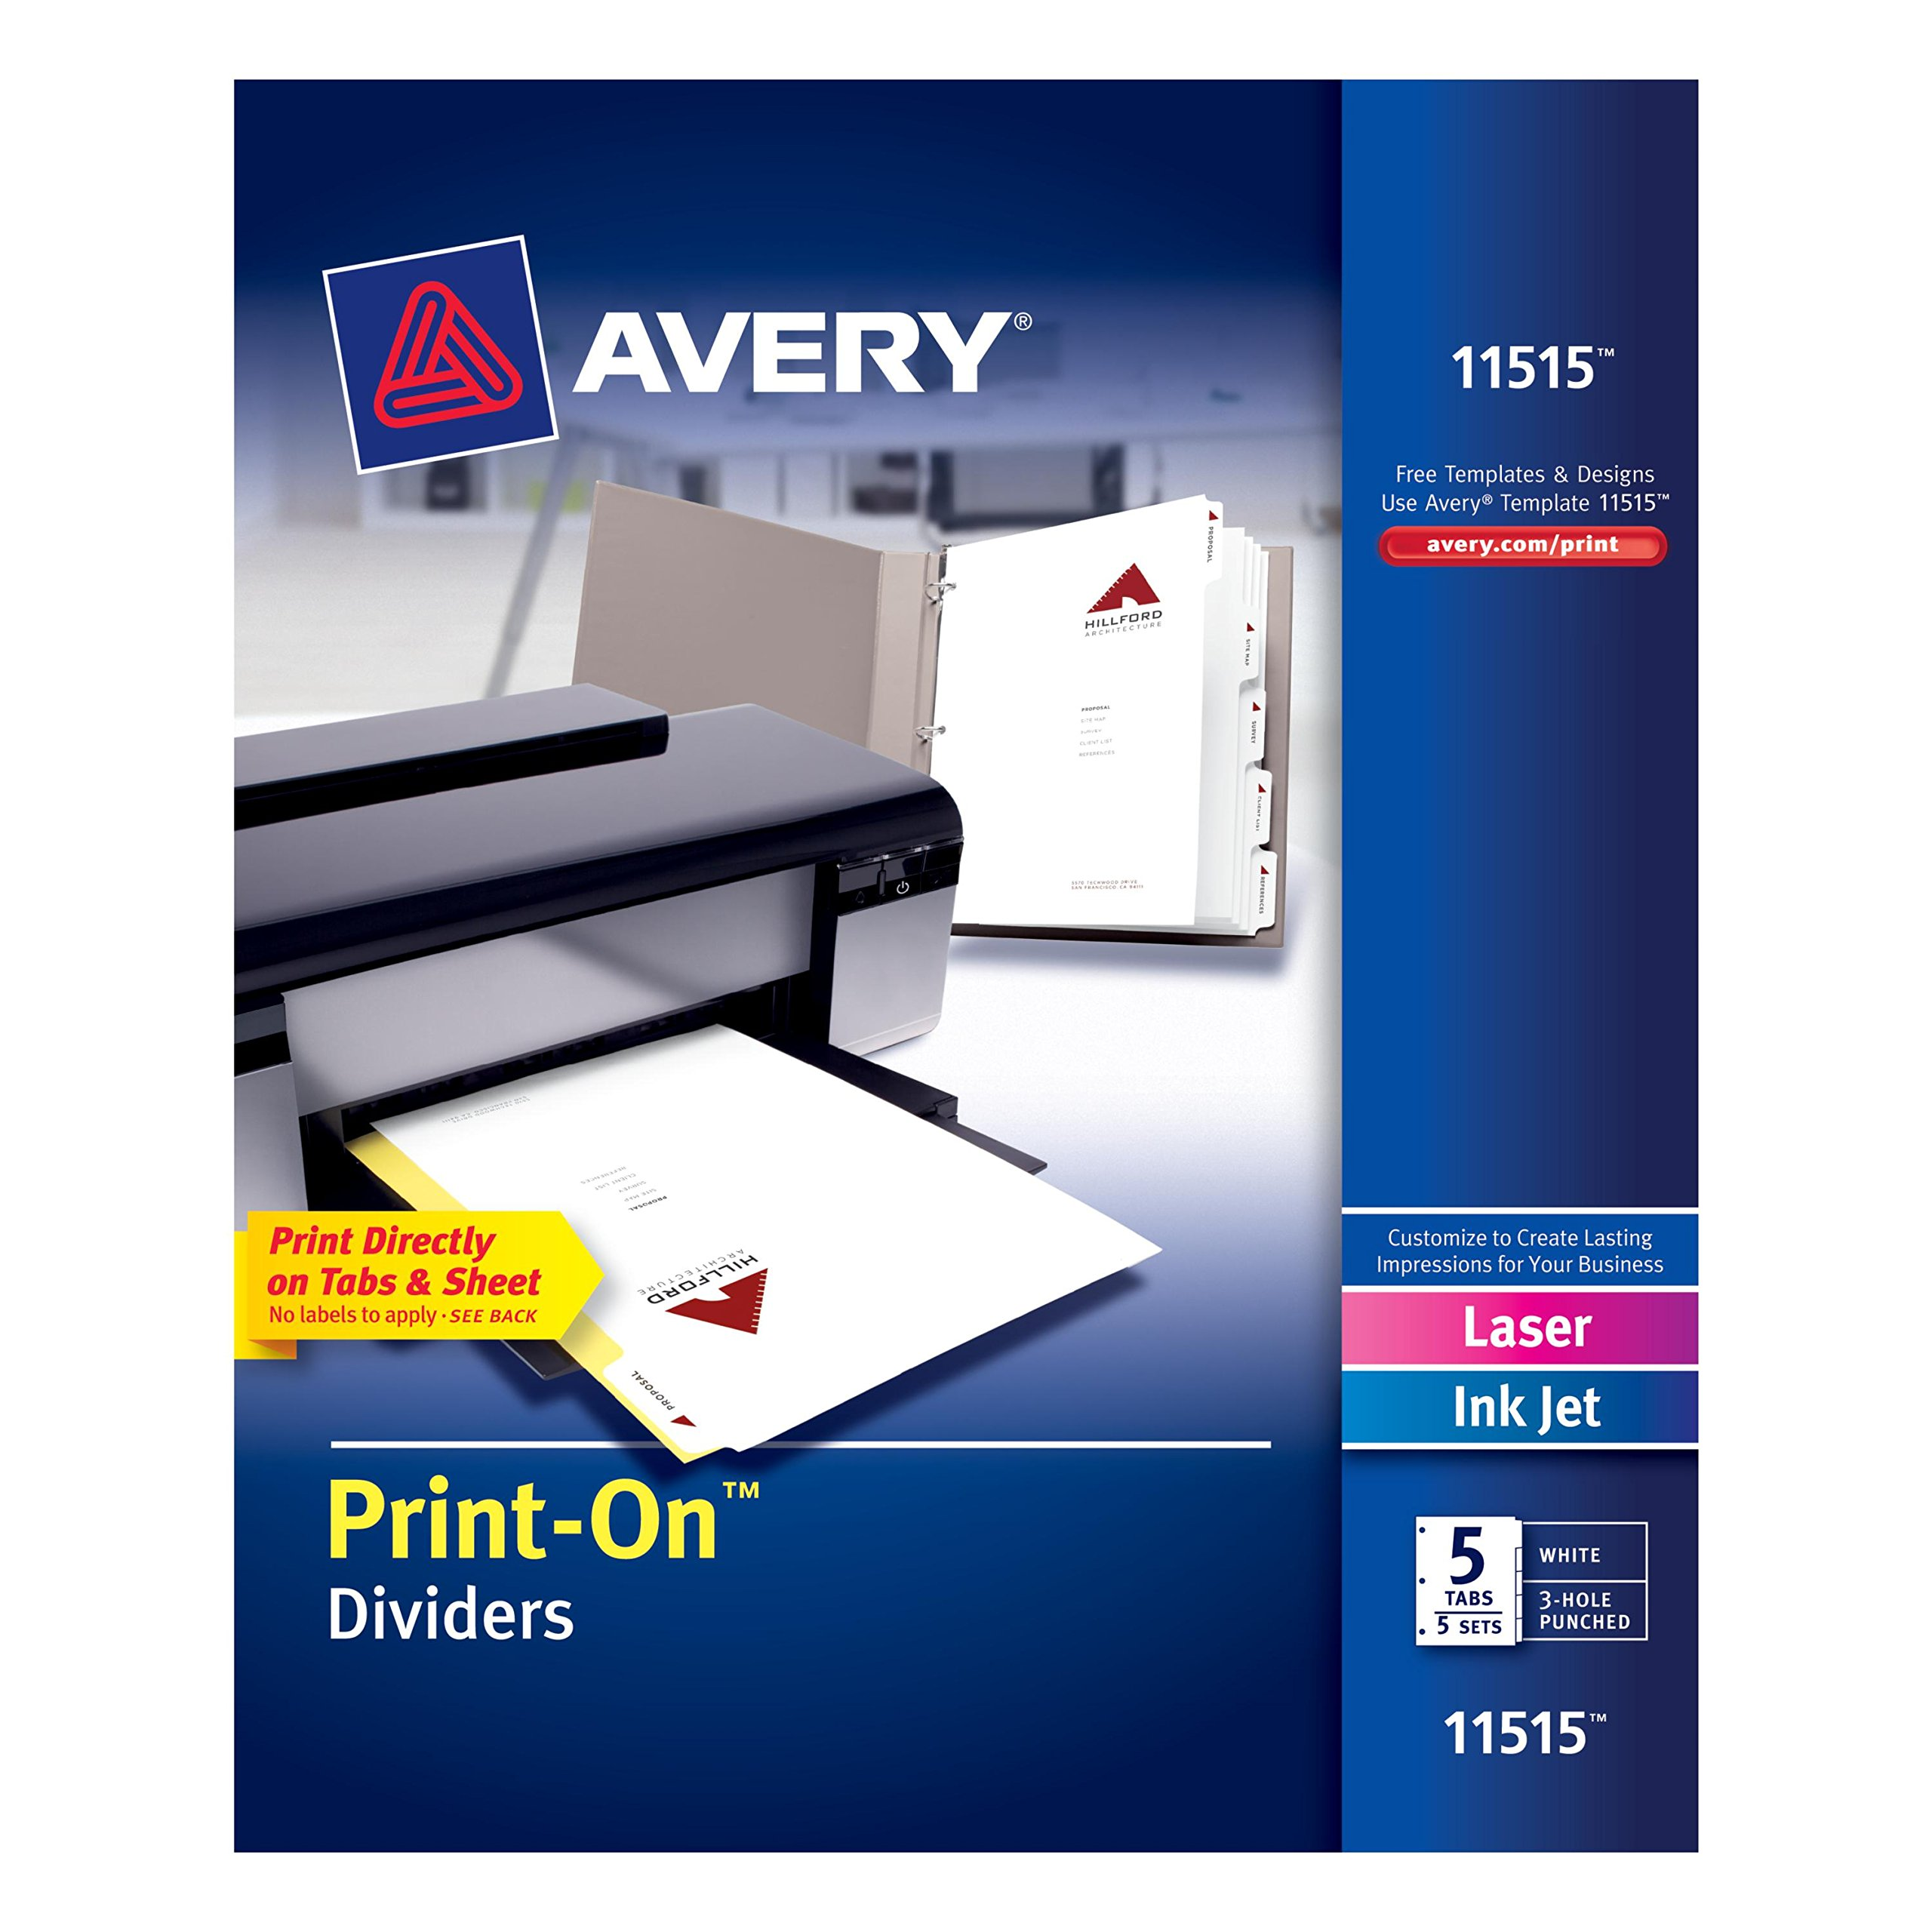 Avery Print-On Dividers, White, 5 Tabs, 5 Sets (11515)